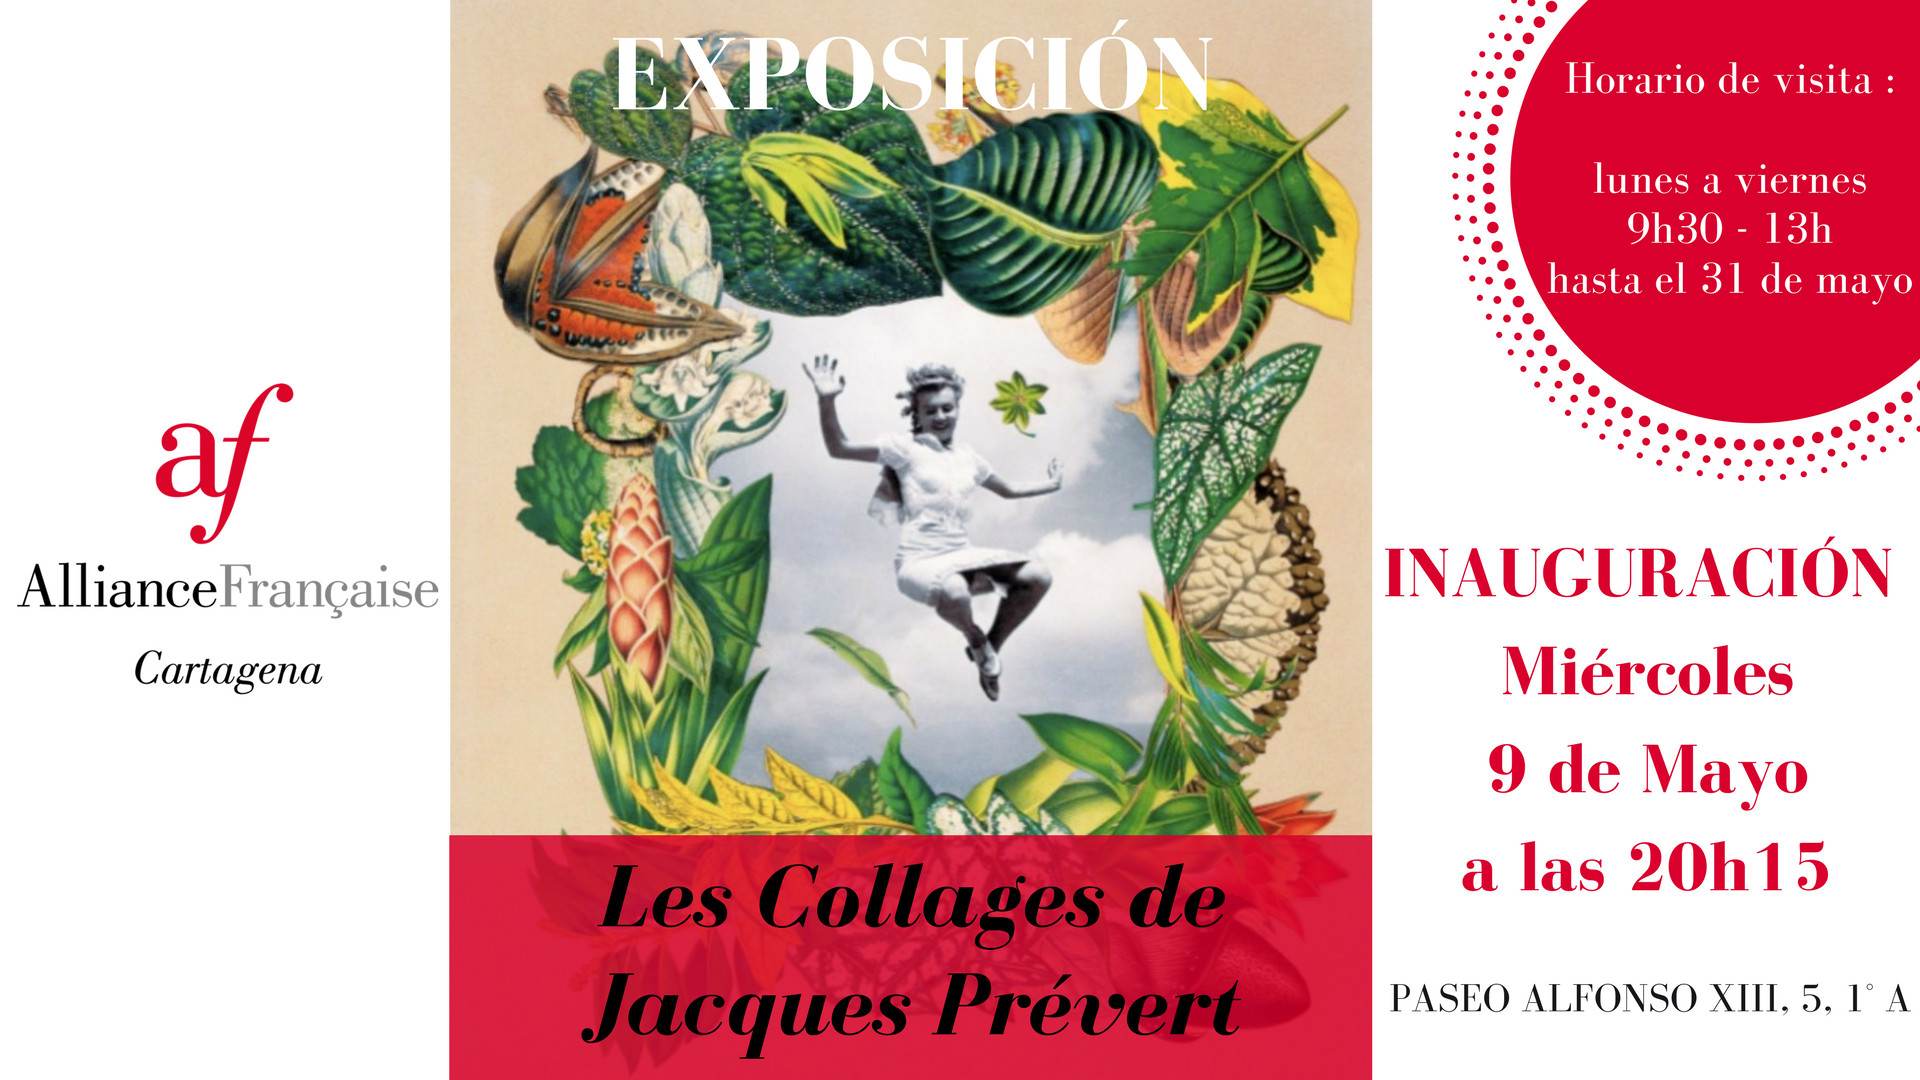 Exposición Les collages de Jacques Prévert 6